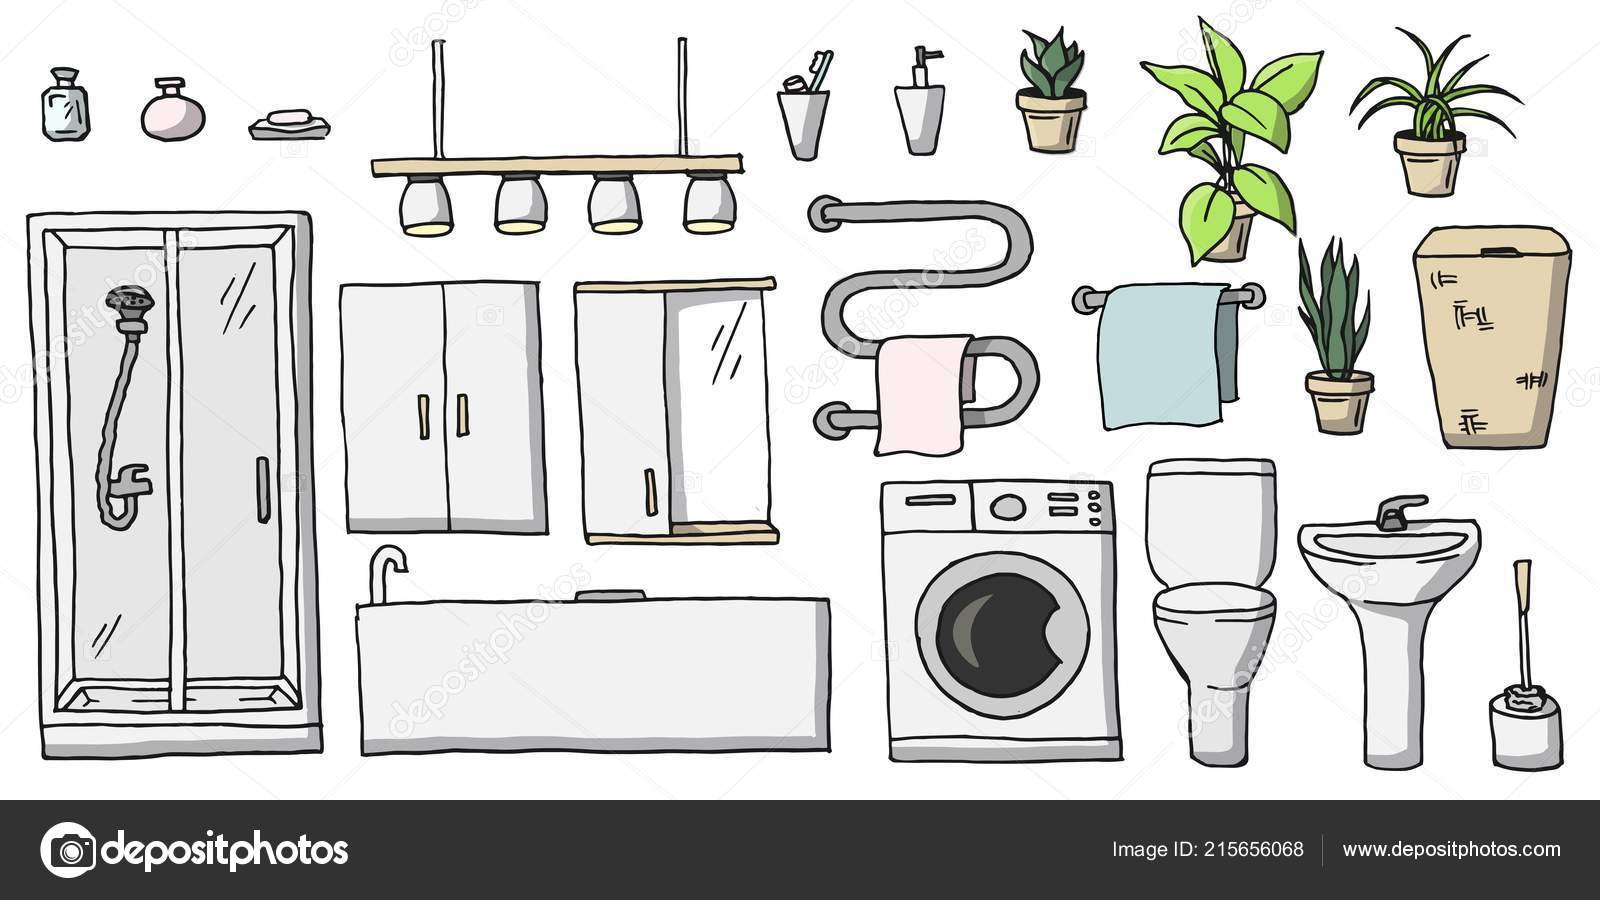 Hand Drawn Cartoon Colored Bathroom Toilet Furniture Set Collection Room Vector Image By C Sofia Gazarian Vector Stock 215656068